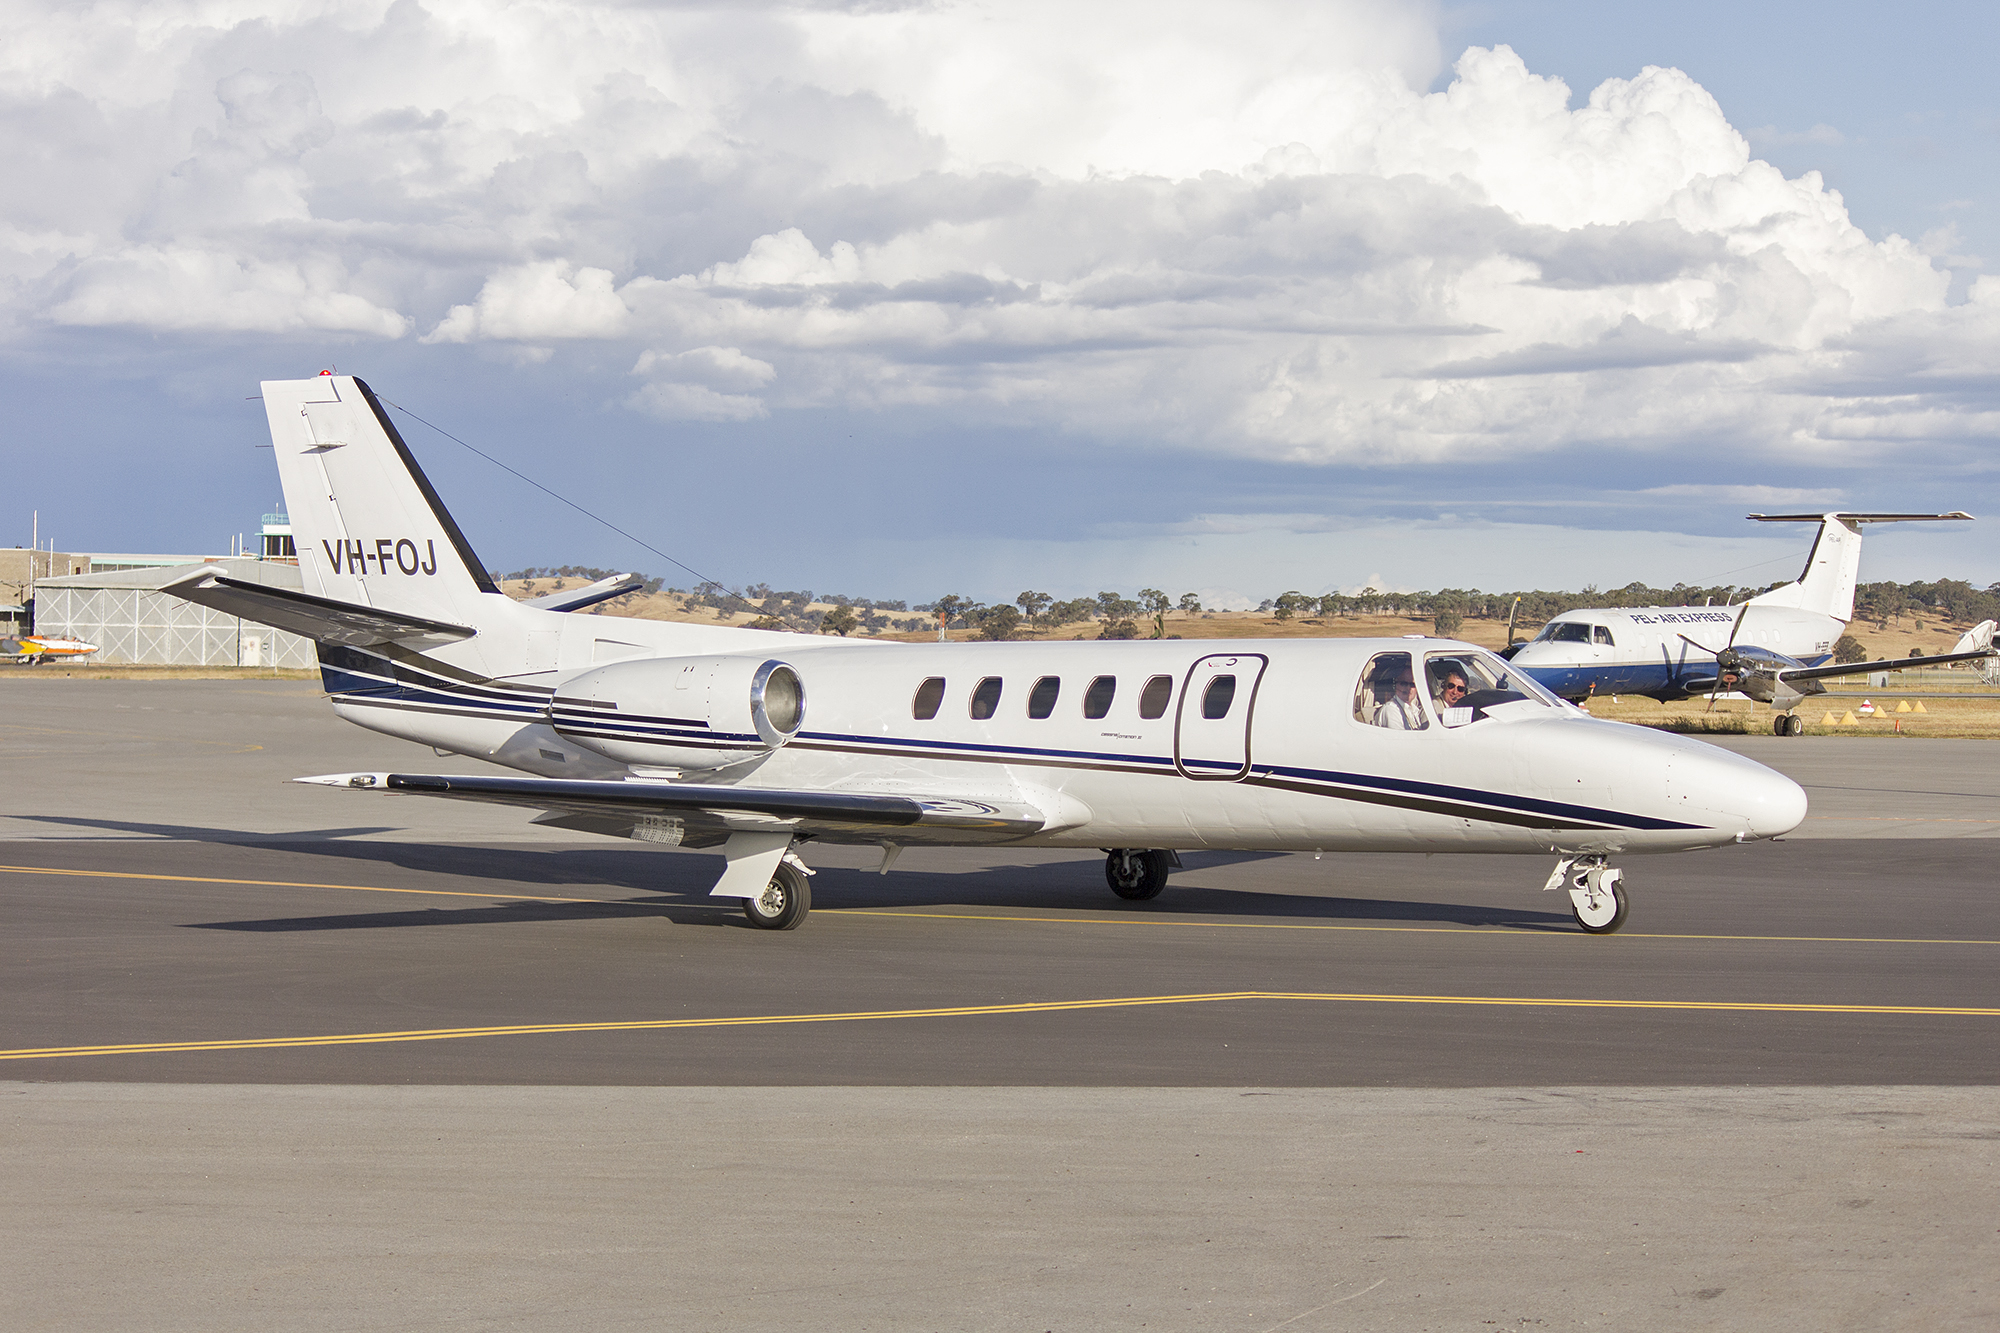 File:Flight Options (VH-FOJ) Cessna 550 Citation II taxiing at Wagga